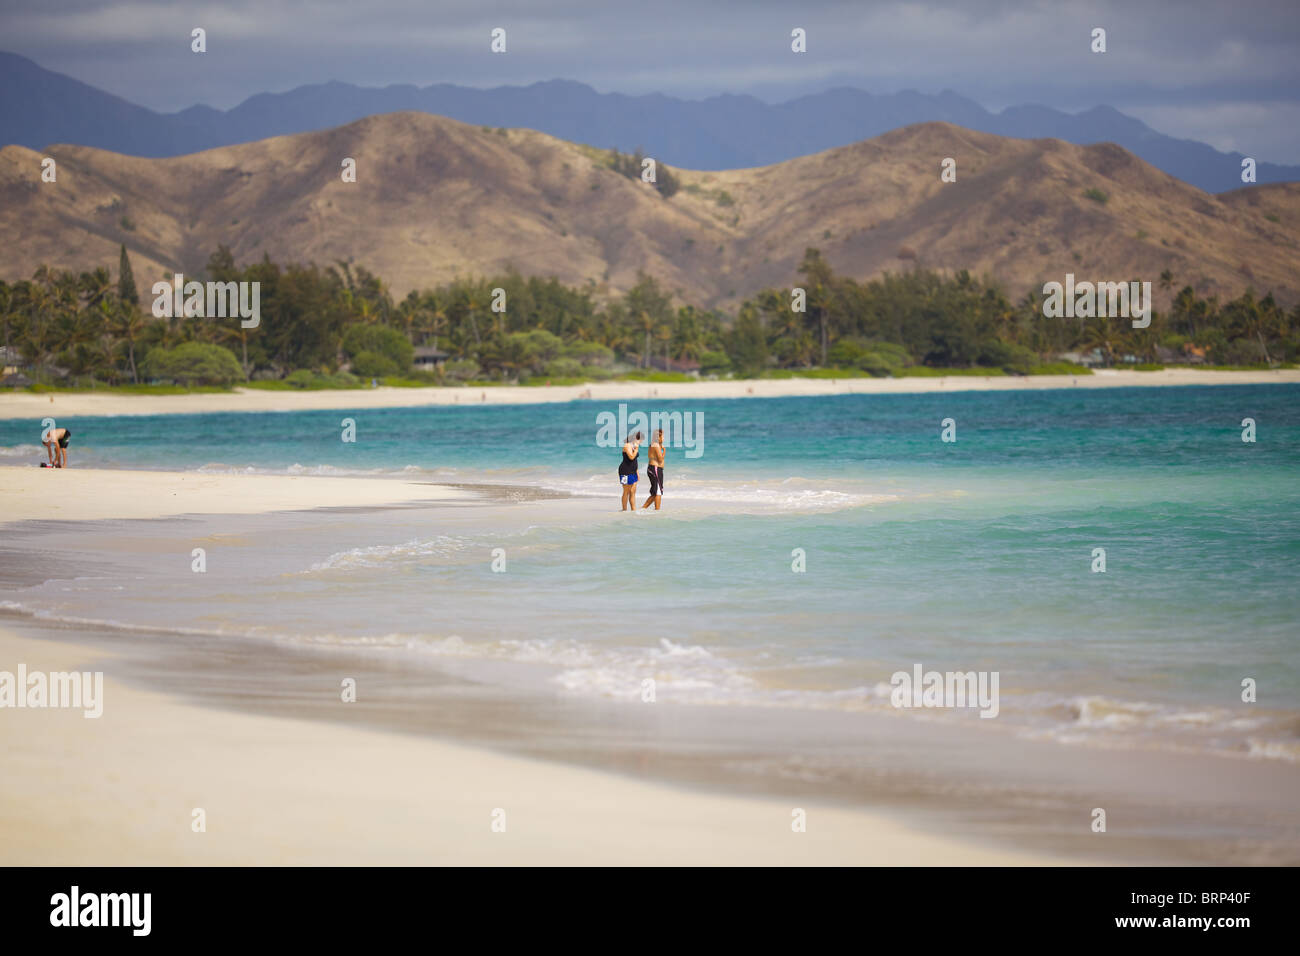 Two people stand by the edge of the ocean at Kailua Beach, Oahu, Hawaii - Stock Image